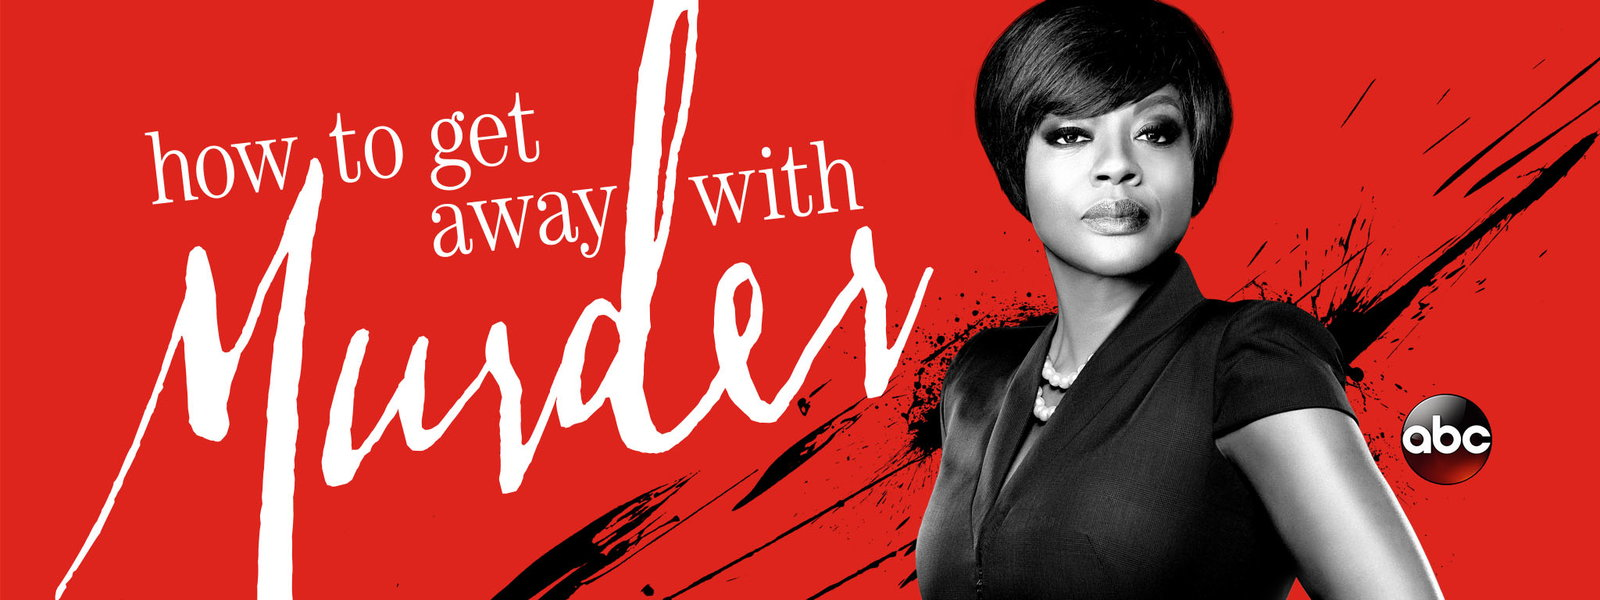 How To Get Away With Murder 02 '